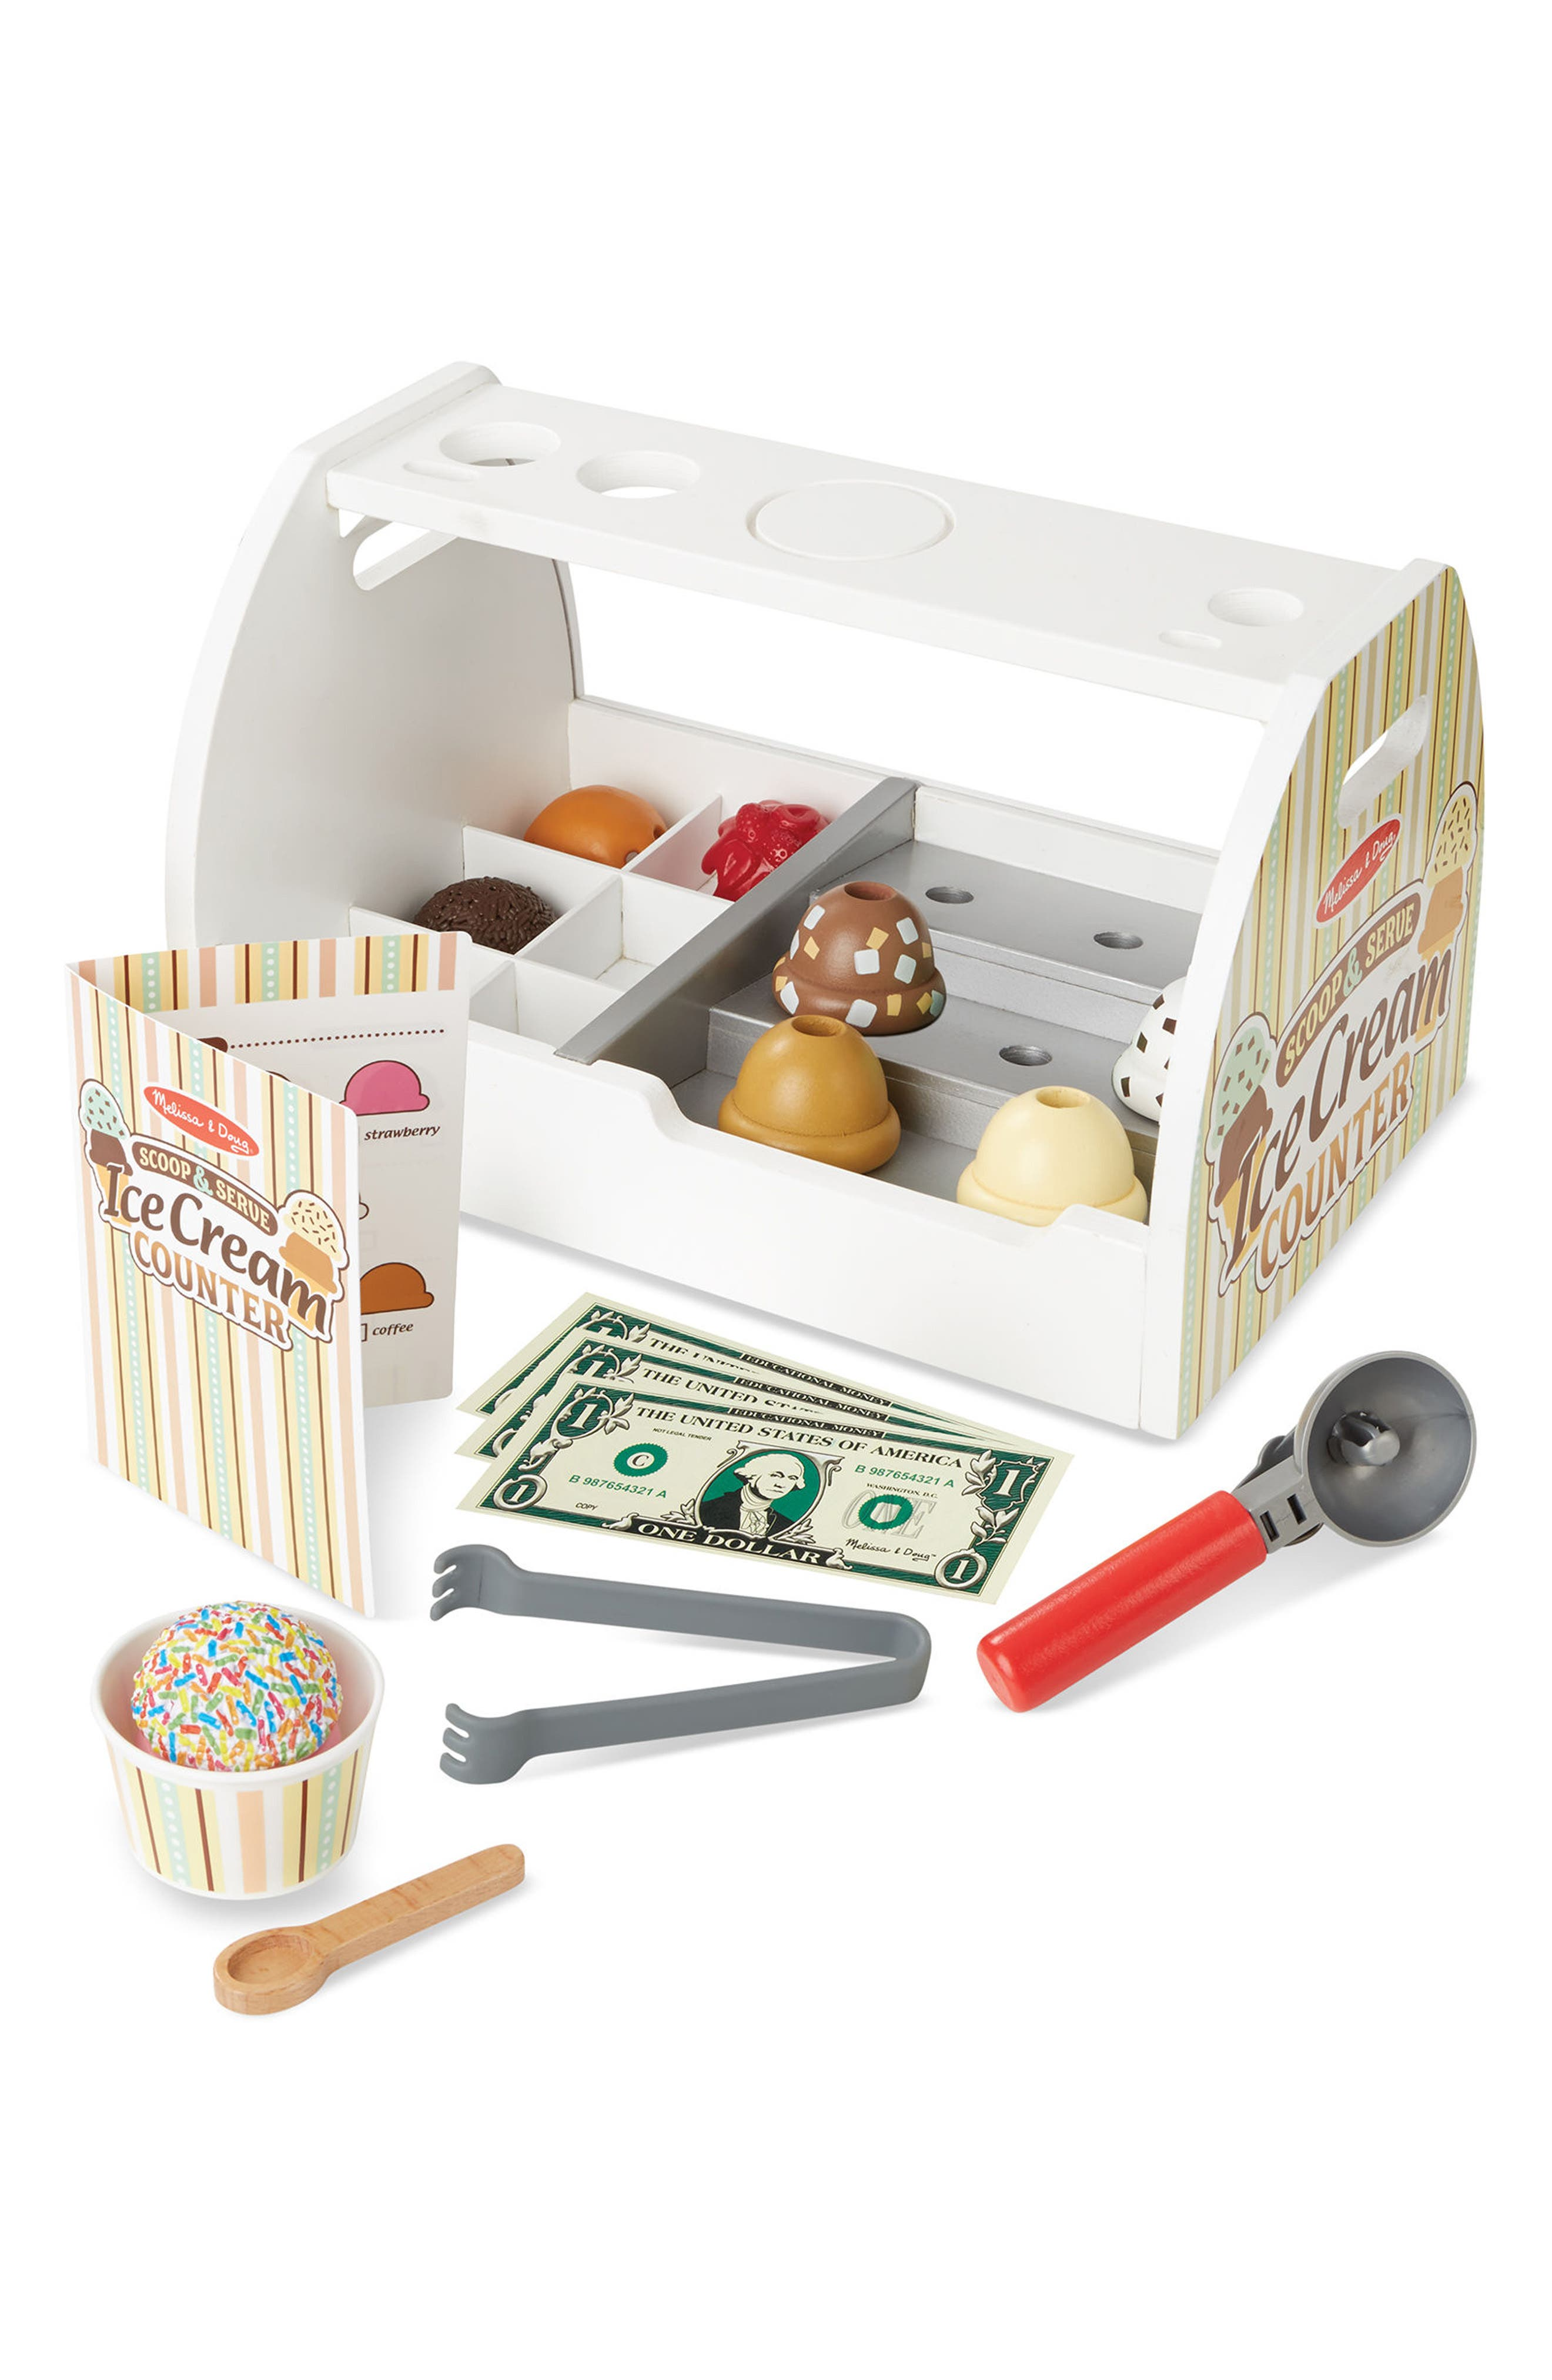 Melissa & Doug Ice Cream Counter Play Set